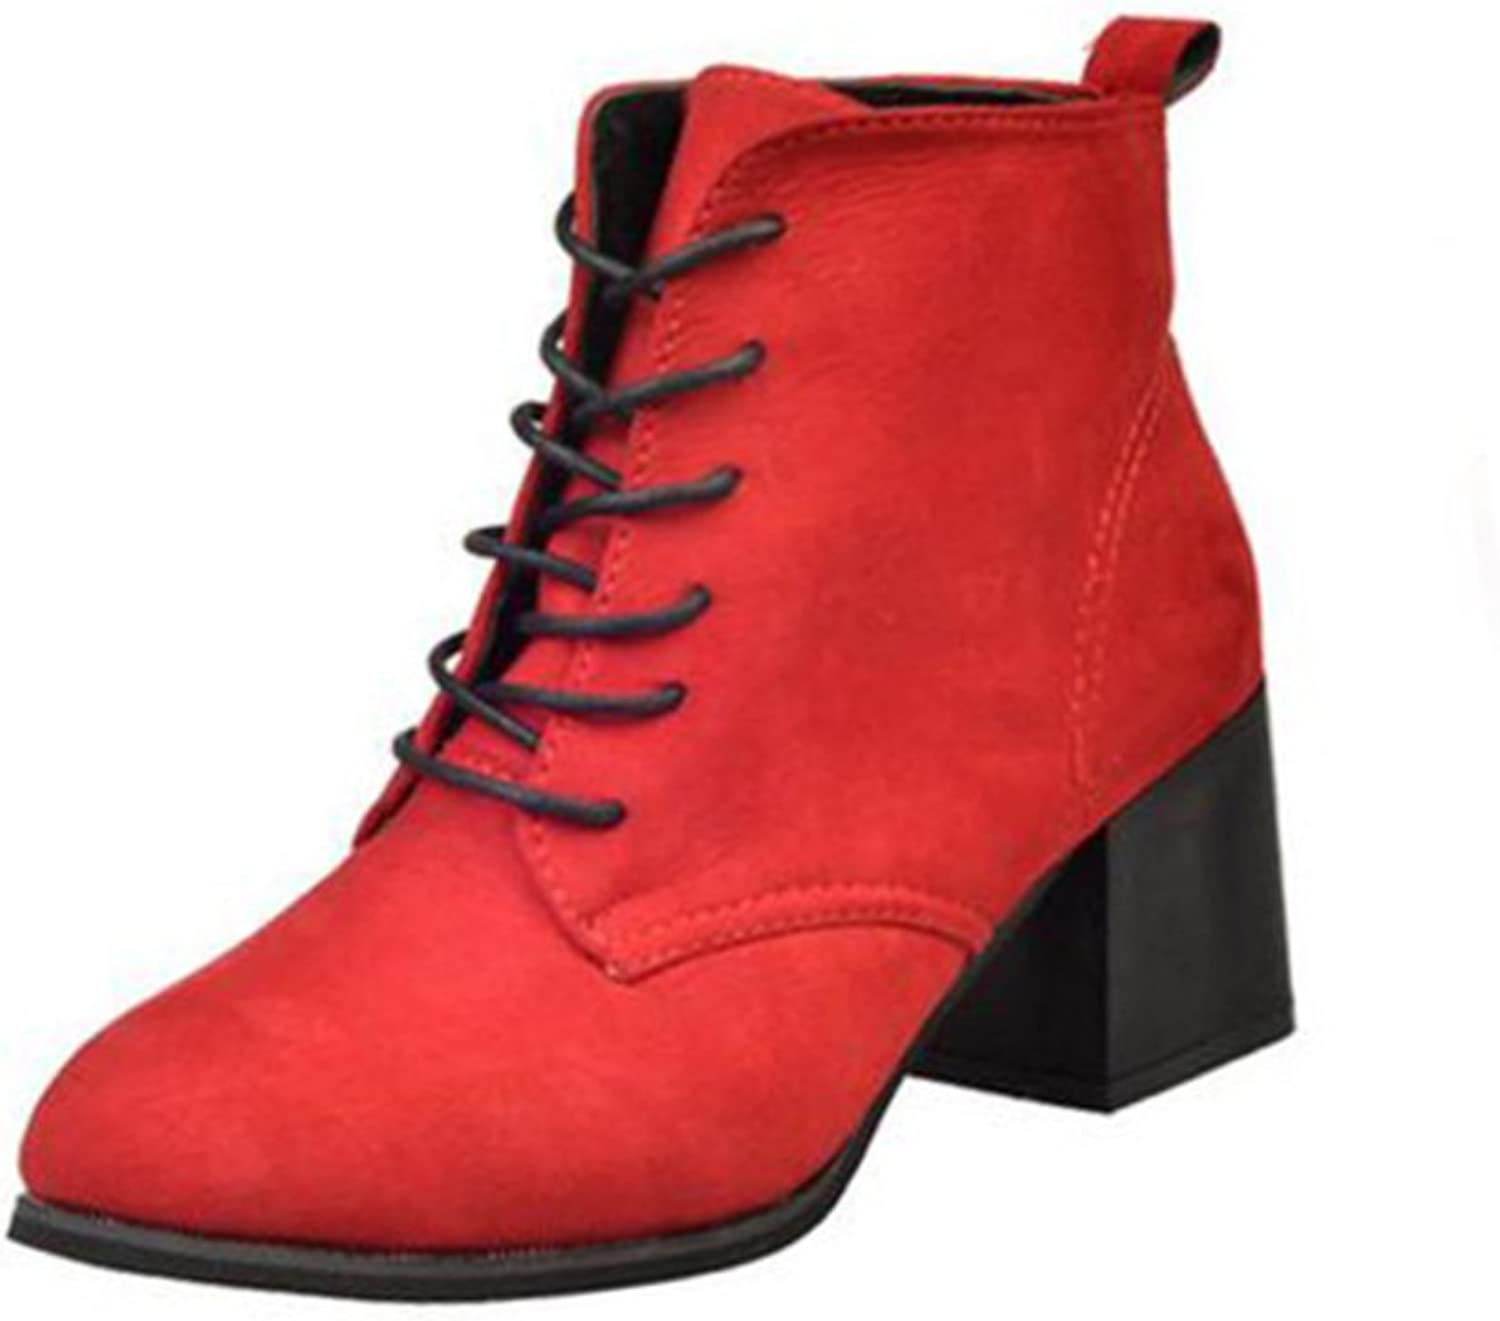 Huhuj Martin boots England wind boots women's boots for fall winter Thick lacing boots in Europe and America Nude boots High heel shoes